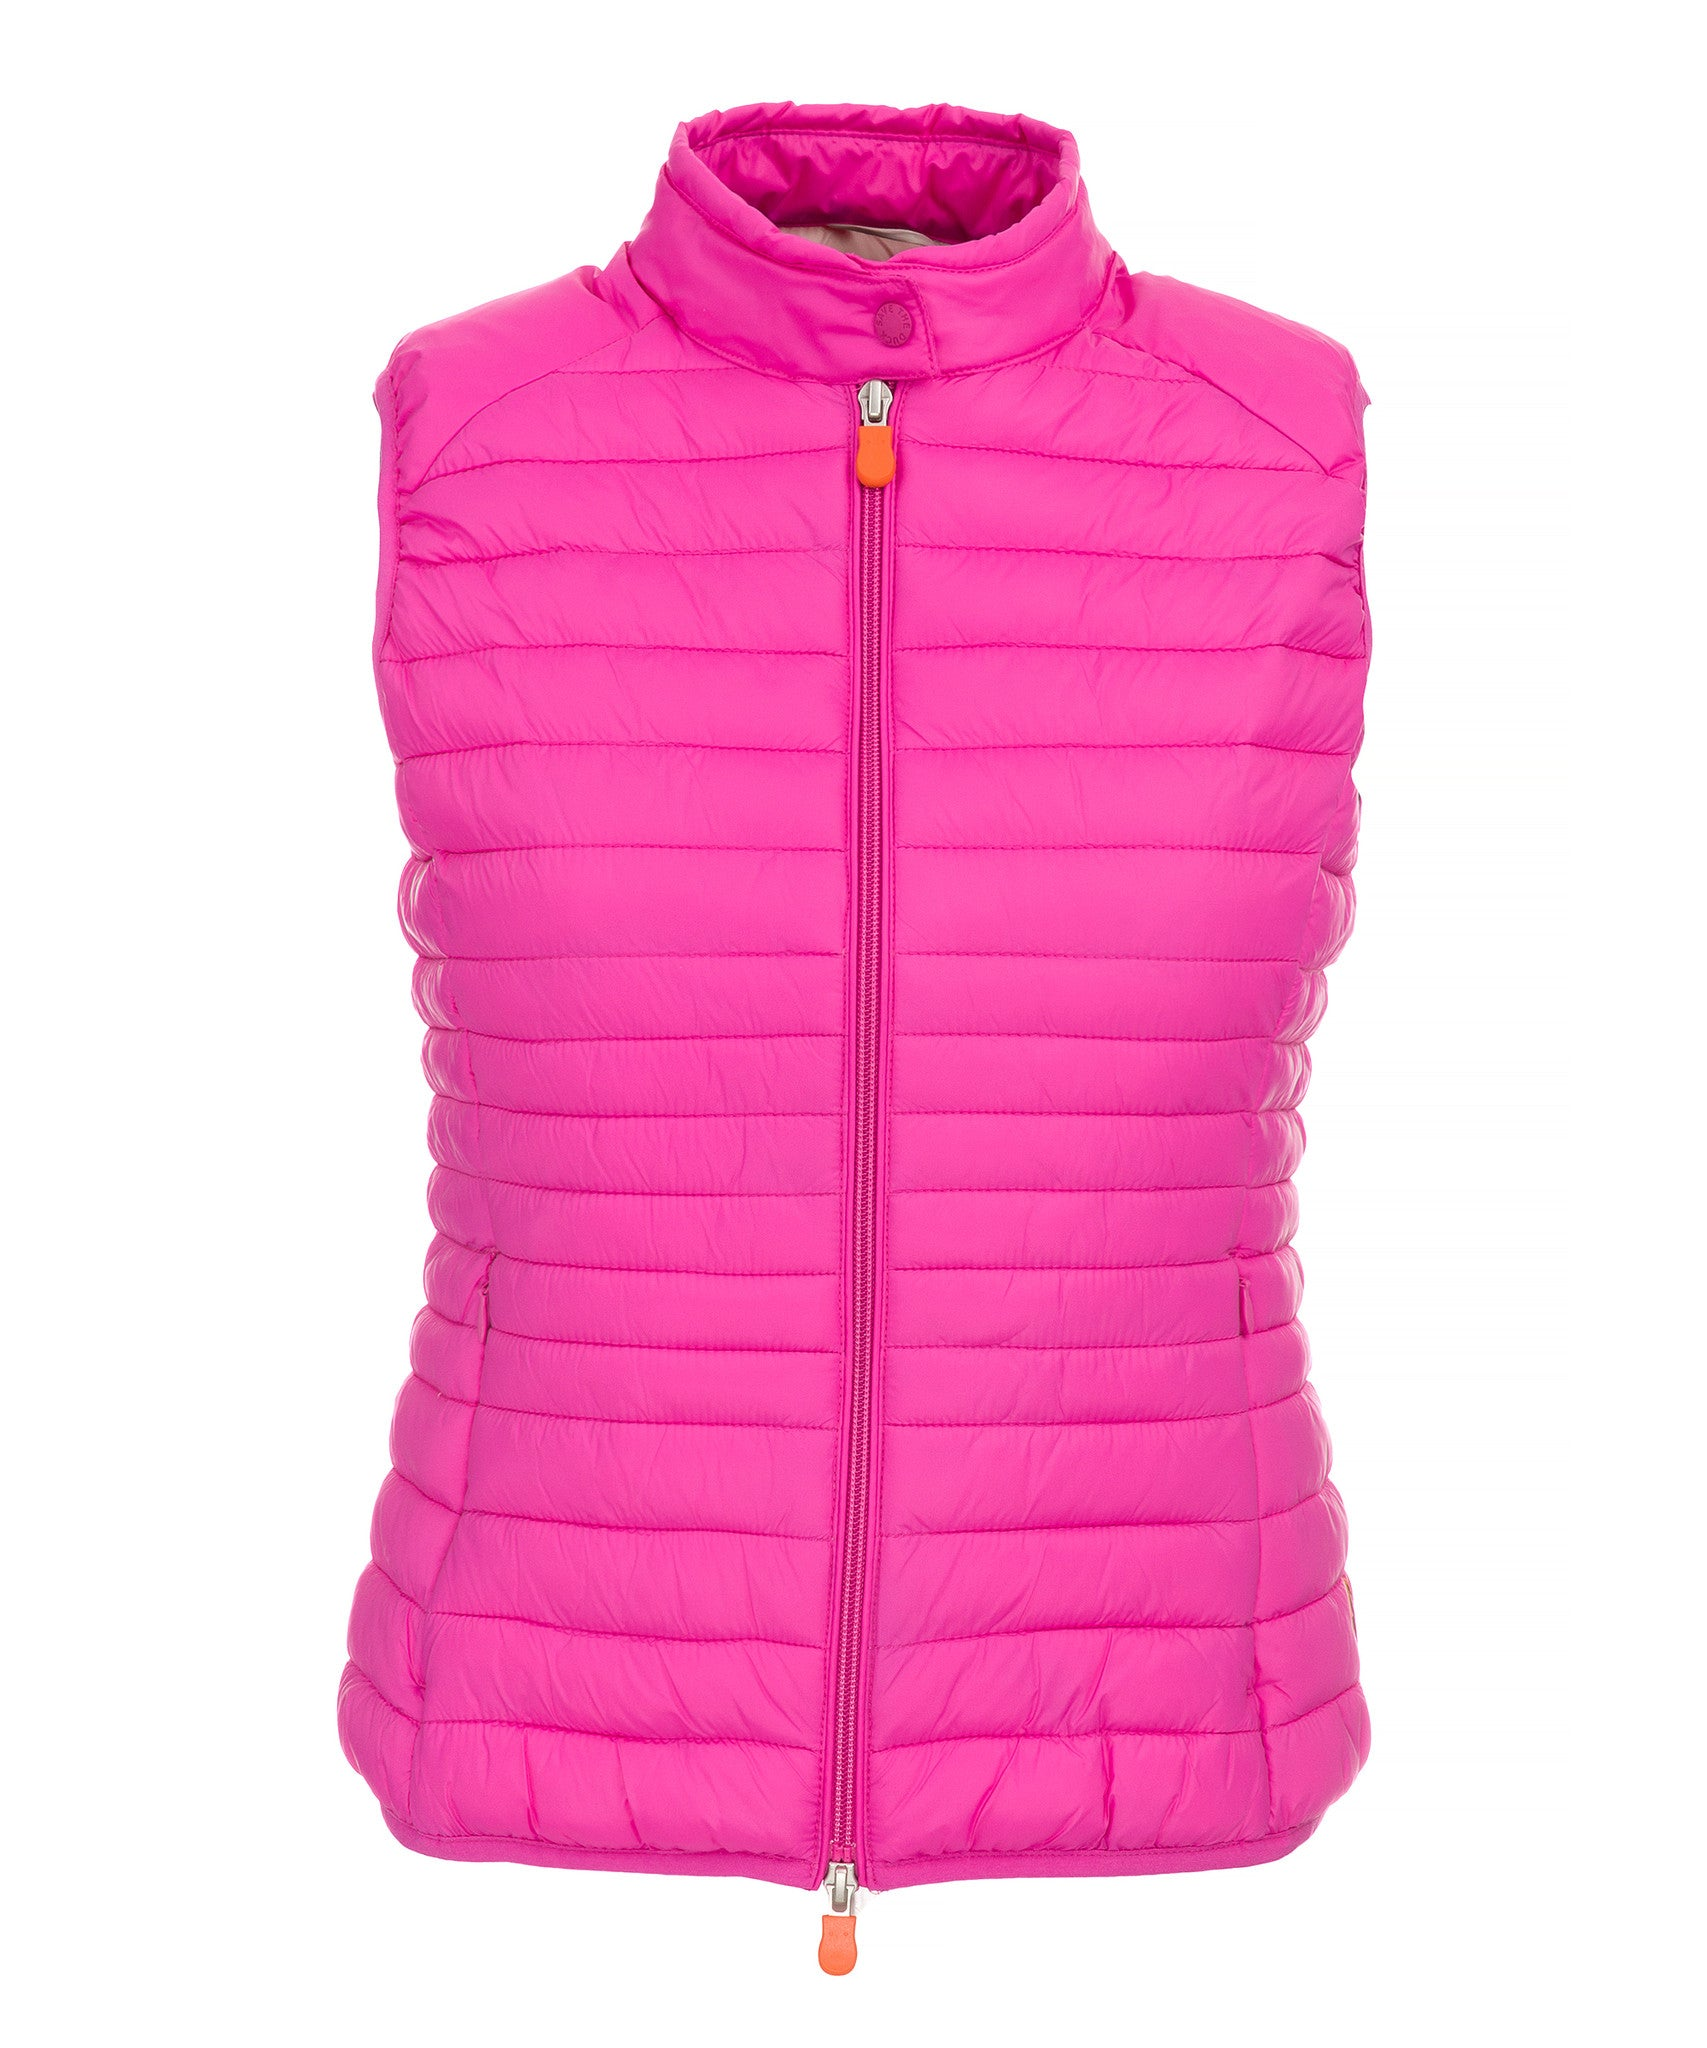 Save The Duck Women s Vest in Fuchsia Pink - Save the Duck cd67613b8